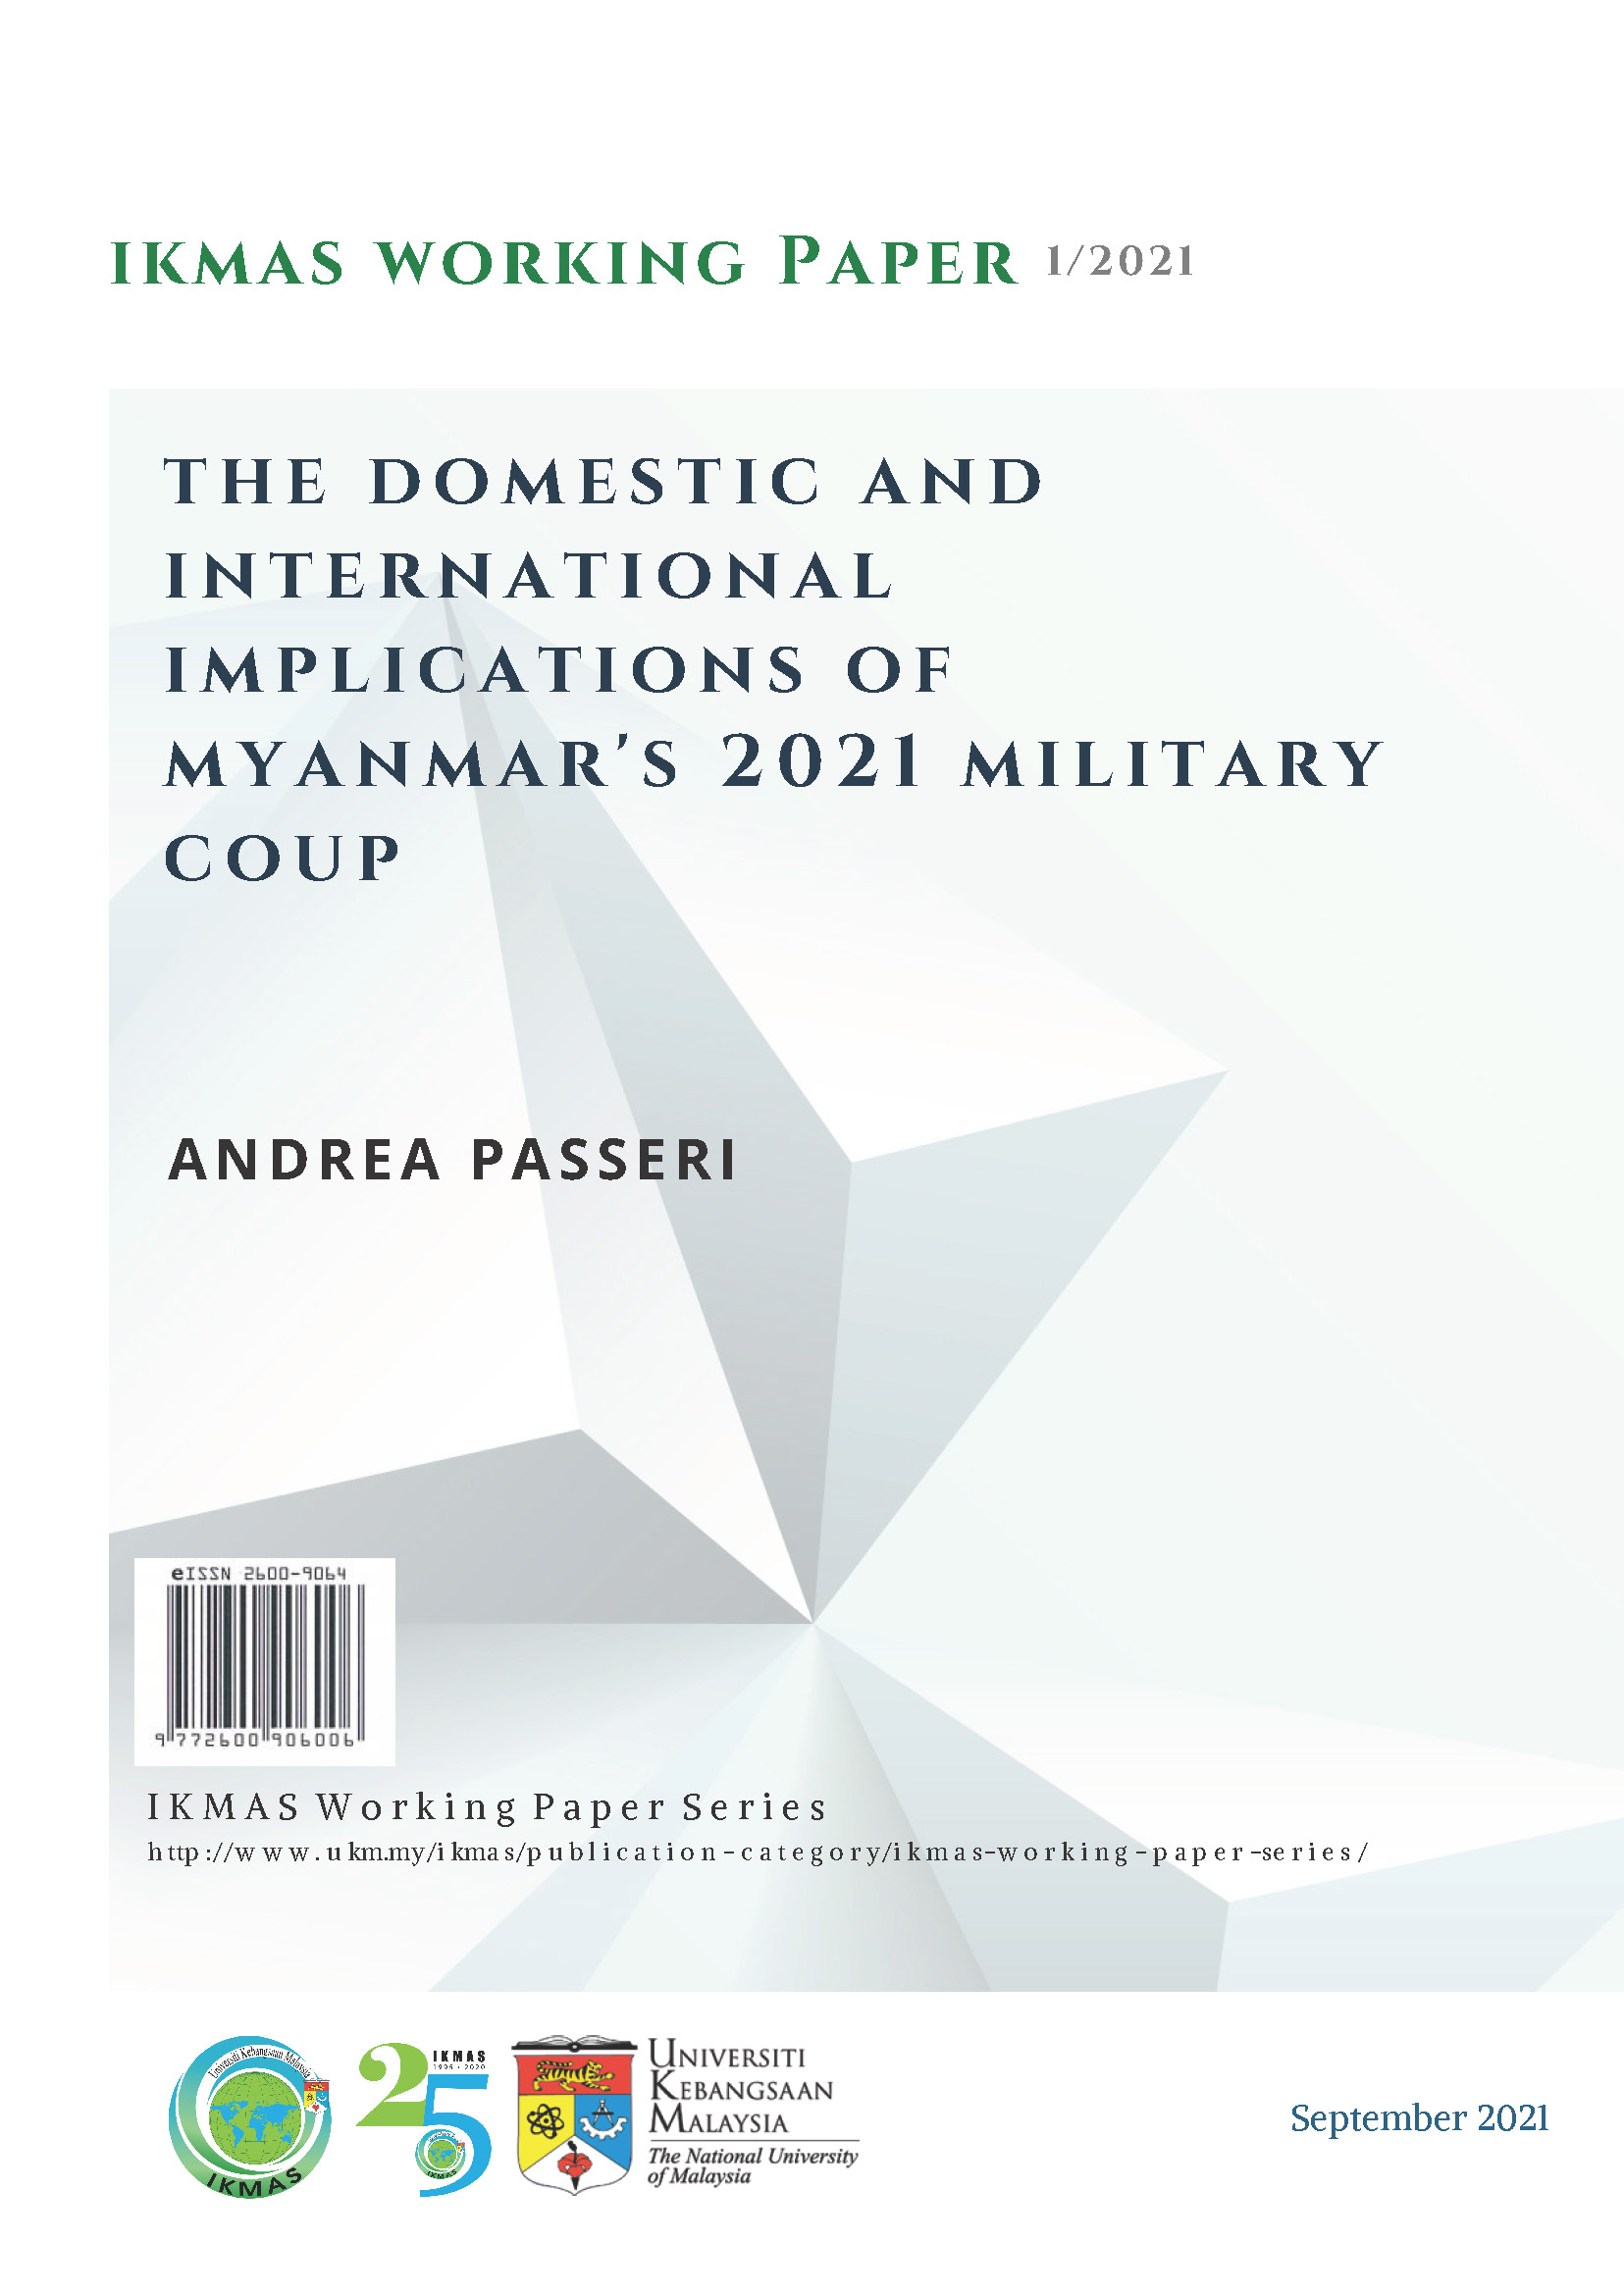 The Domestic and International Implications of Myanmar's 2021 Military Coup